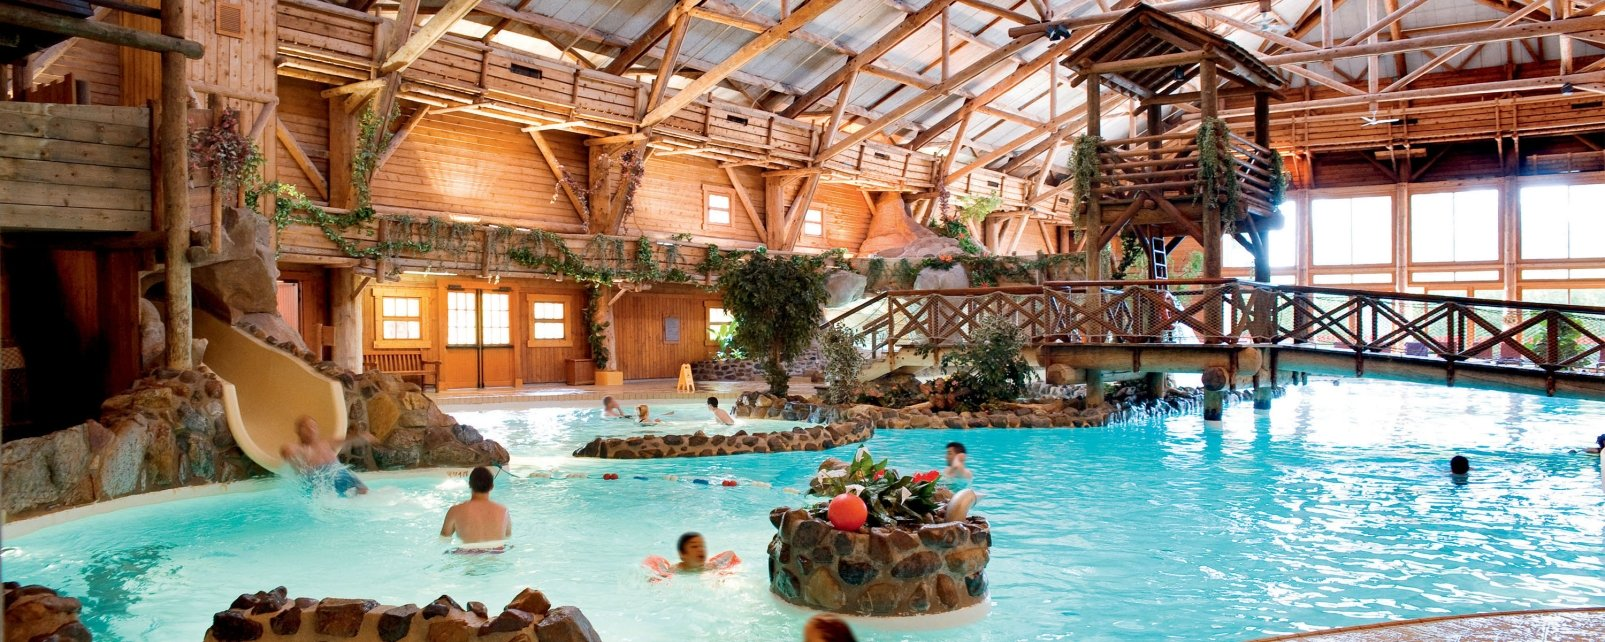 H tel disney 39 s davy crockett ranch marne la vall e france for Piscine davy crockett